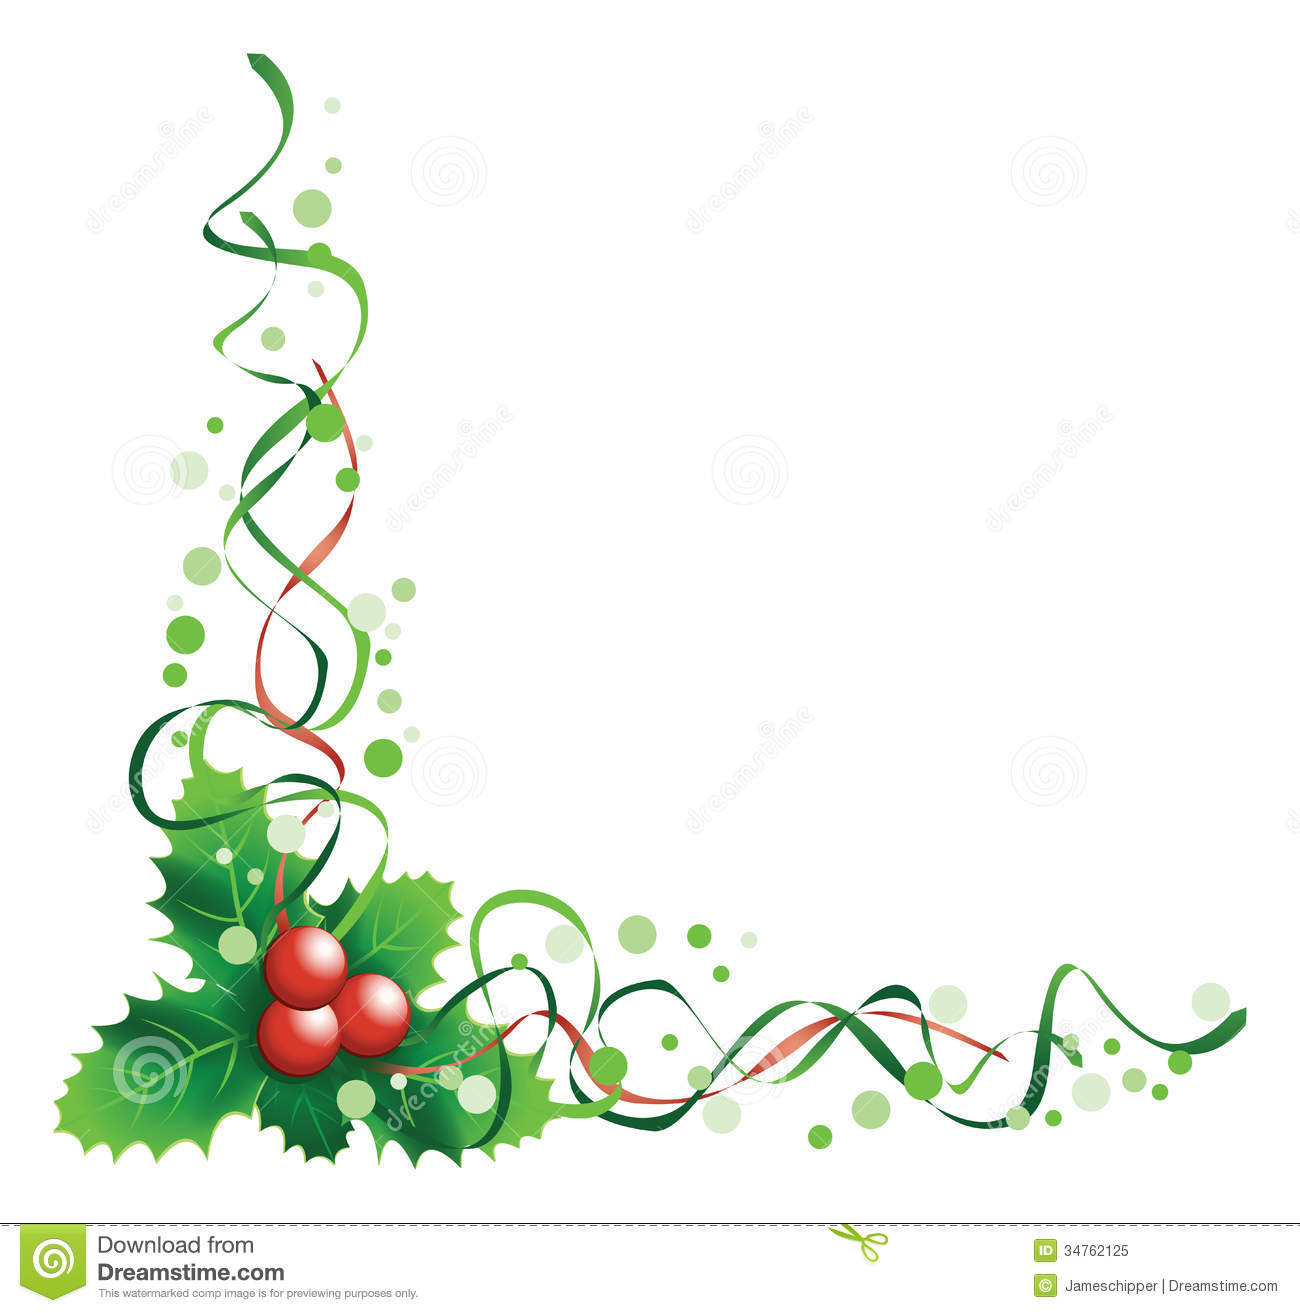 Free Download Christmas Holly Border Clipart Borders - Christmas Page  Borders Png Transparent Png (#95834) - PinClipart